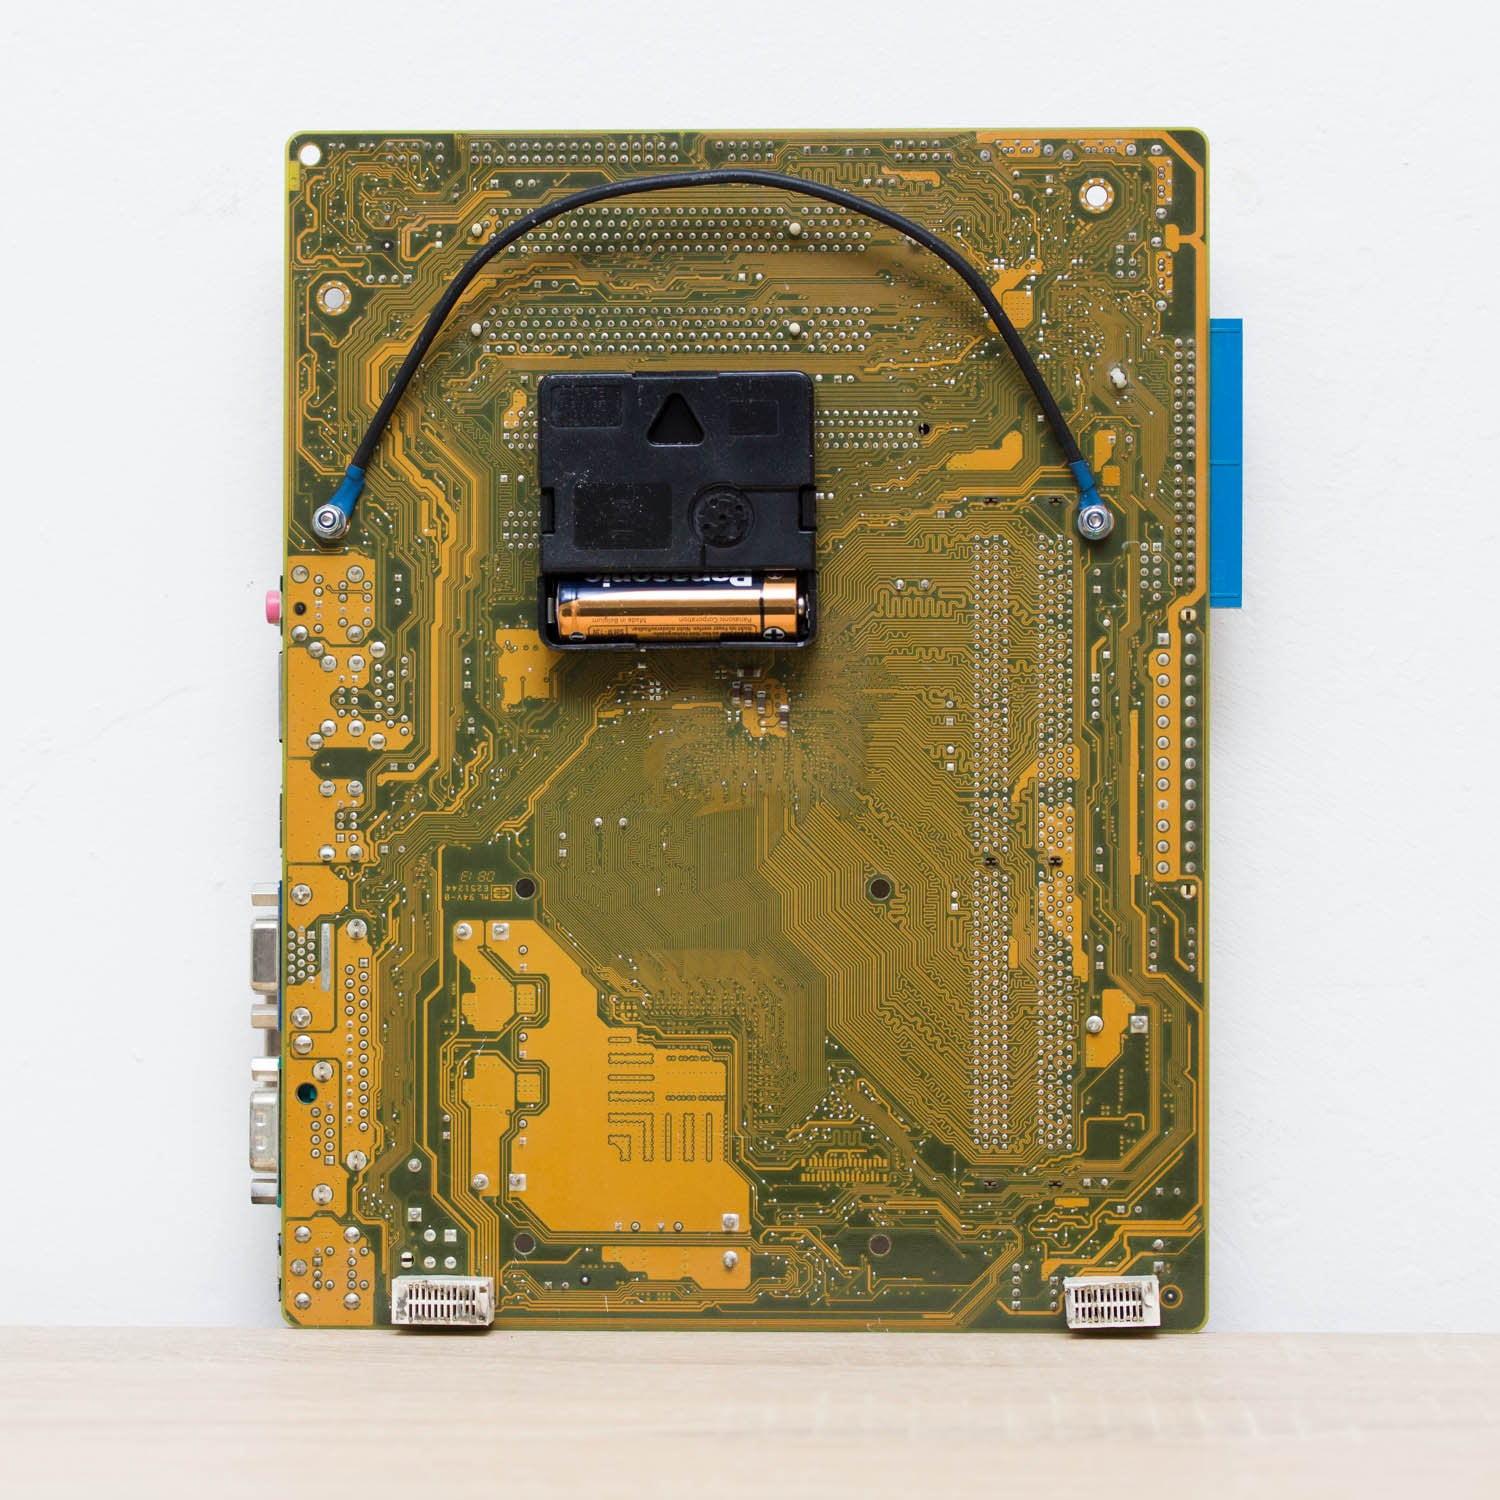 Geeky Wall Clock made of recycled yellow / olive green Circuit Board